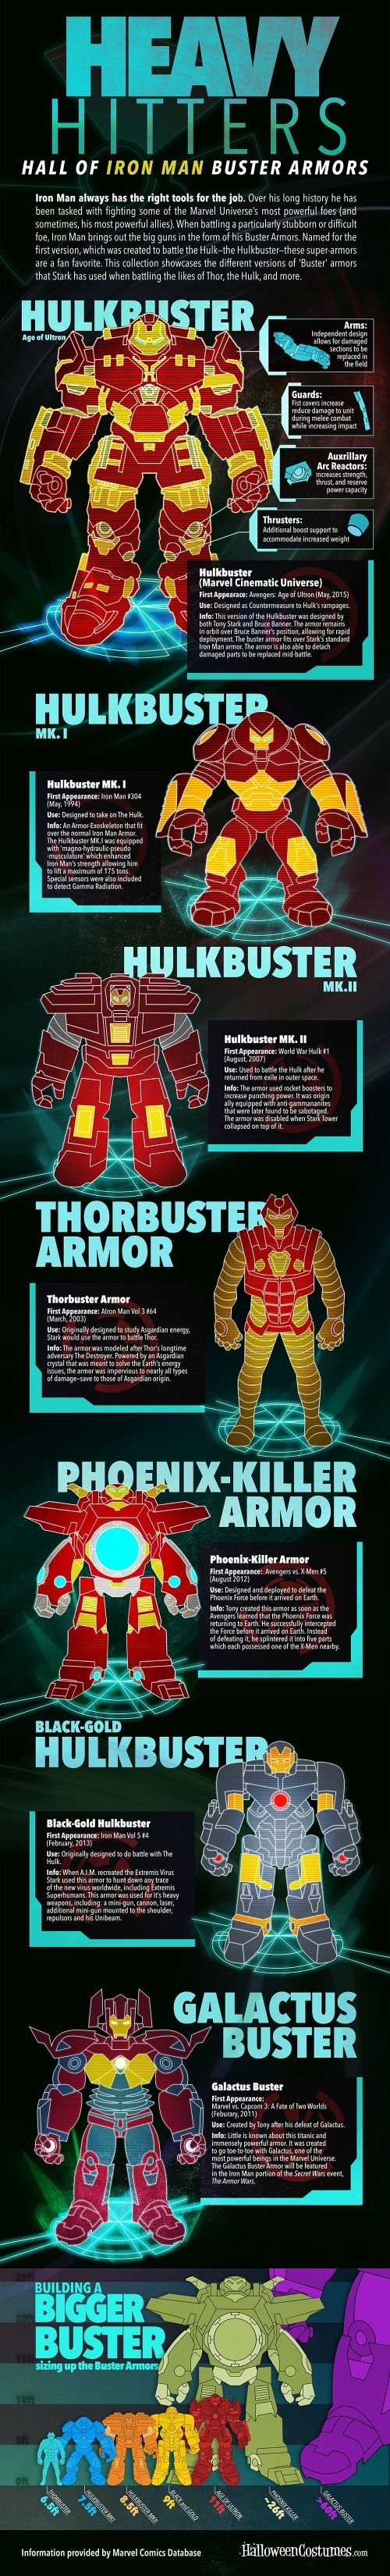 "How in the world can there be a sixty-foot tall Iron Man suit!?! ~~ Infographic: Iron Man's ""Hulkbuster"" armors"